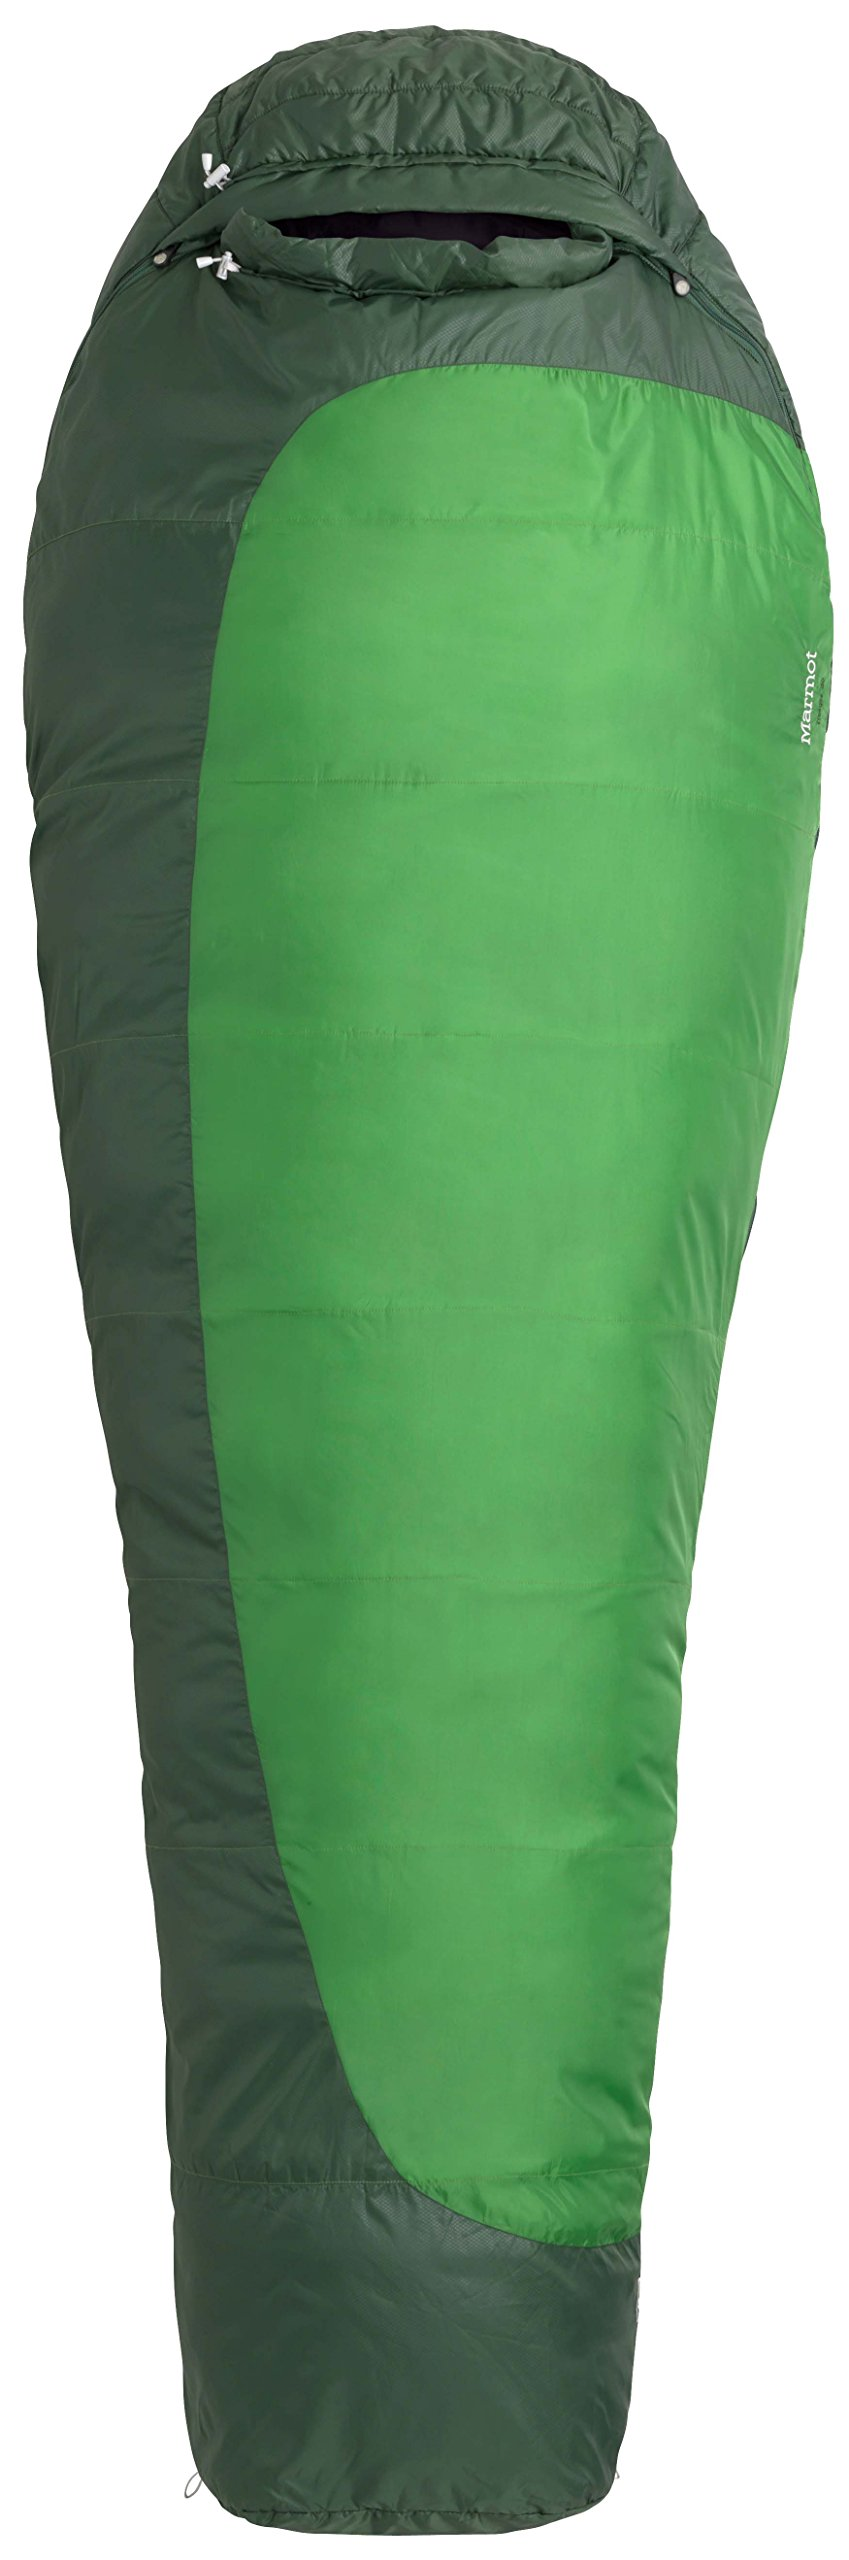 Marmot Trestles 30 Mummy Sleeping Bag, 30-Degree Rating 3